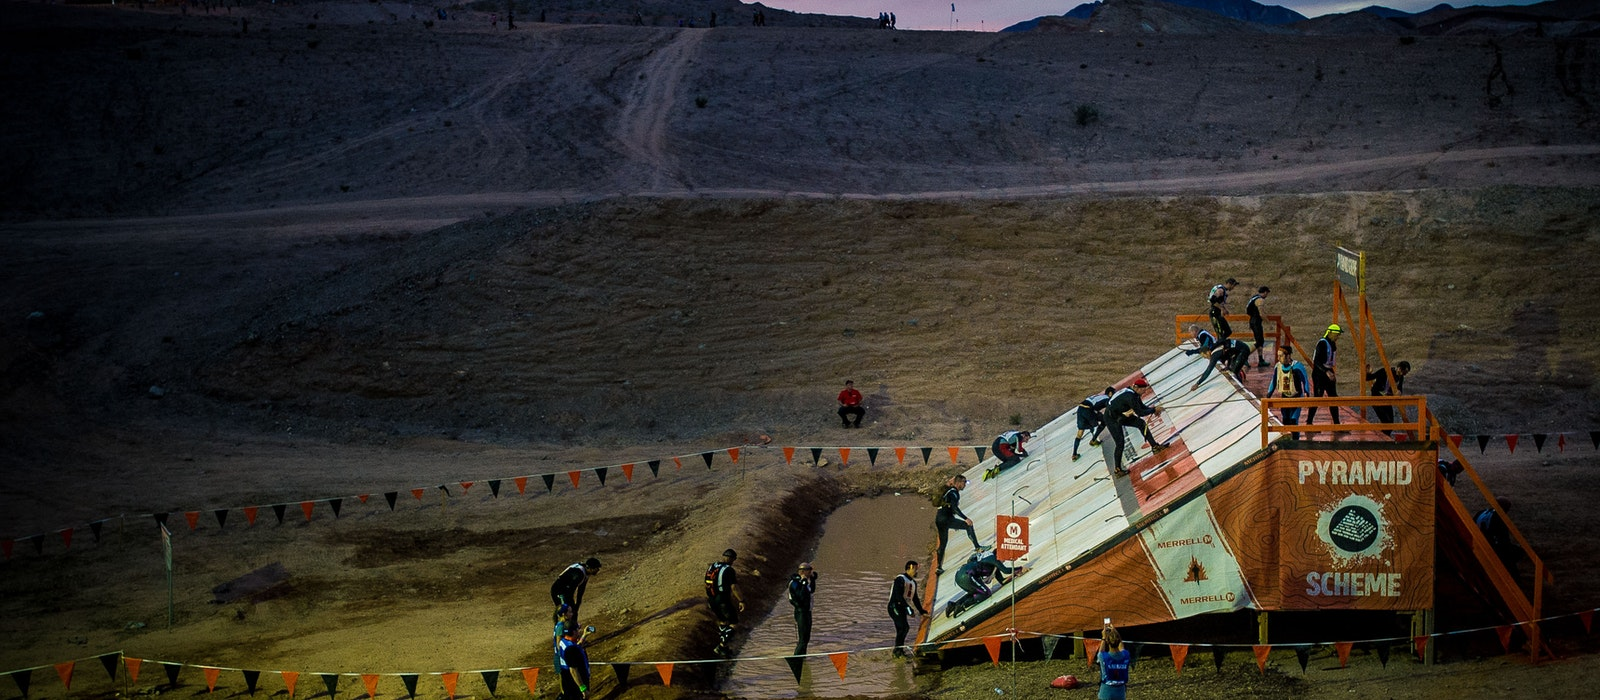 In less than a decade, Tough Mudder has grown into a $100-million-dollar business, now hosting 130 events per year in 11 countries.